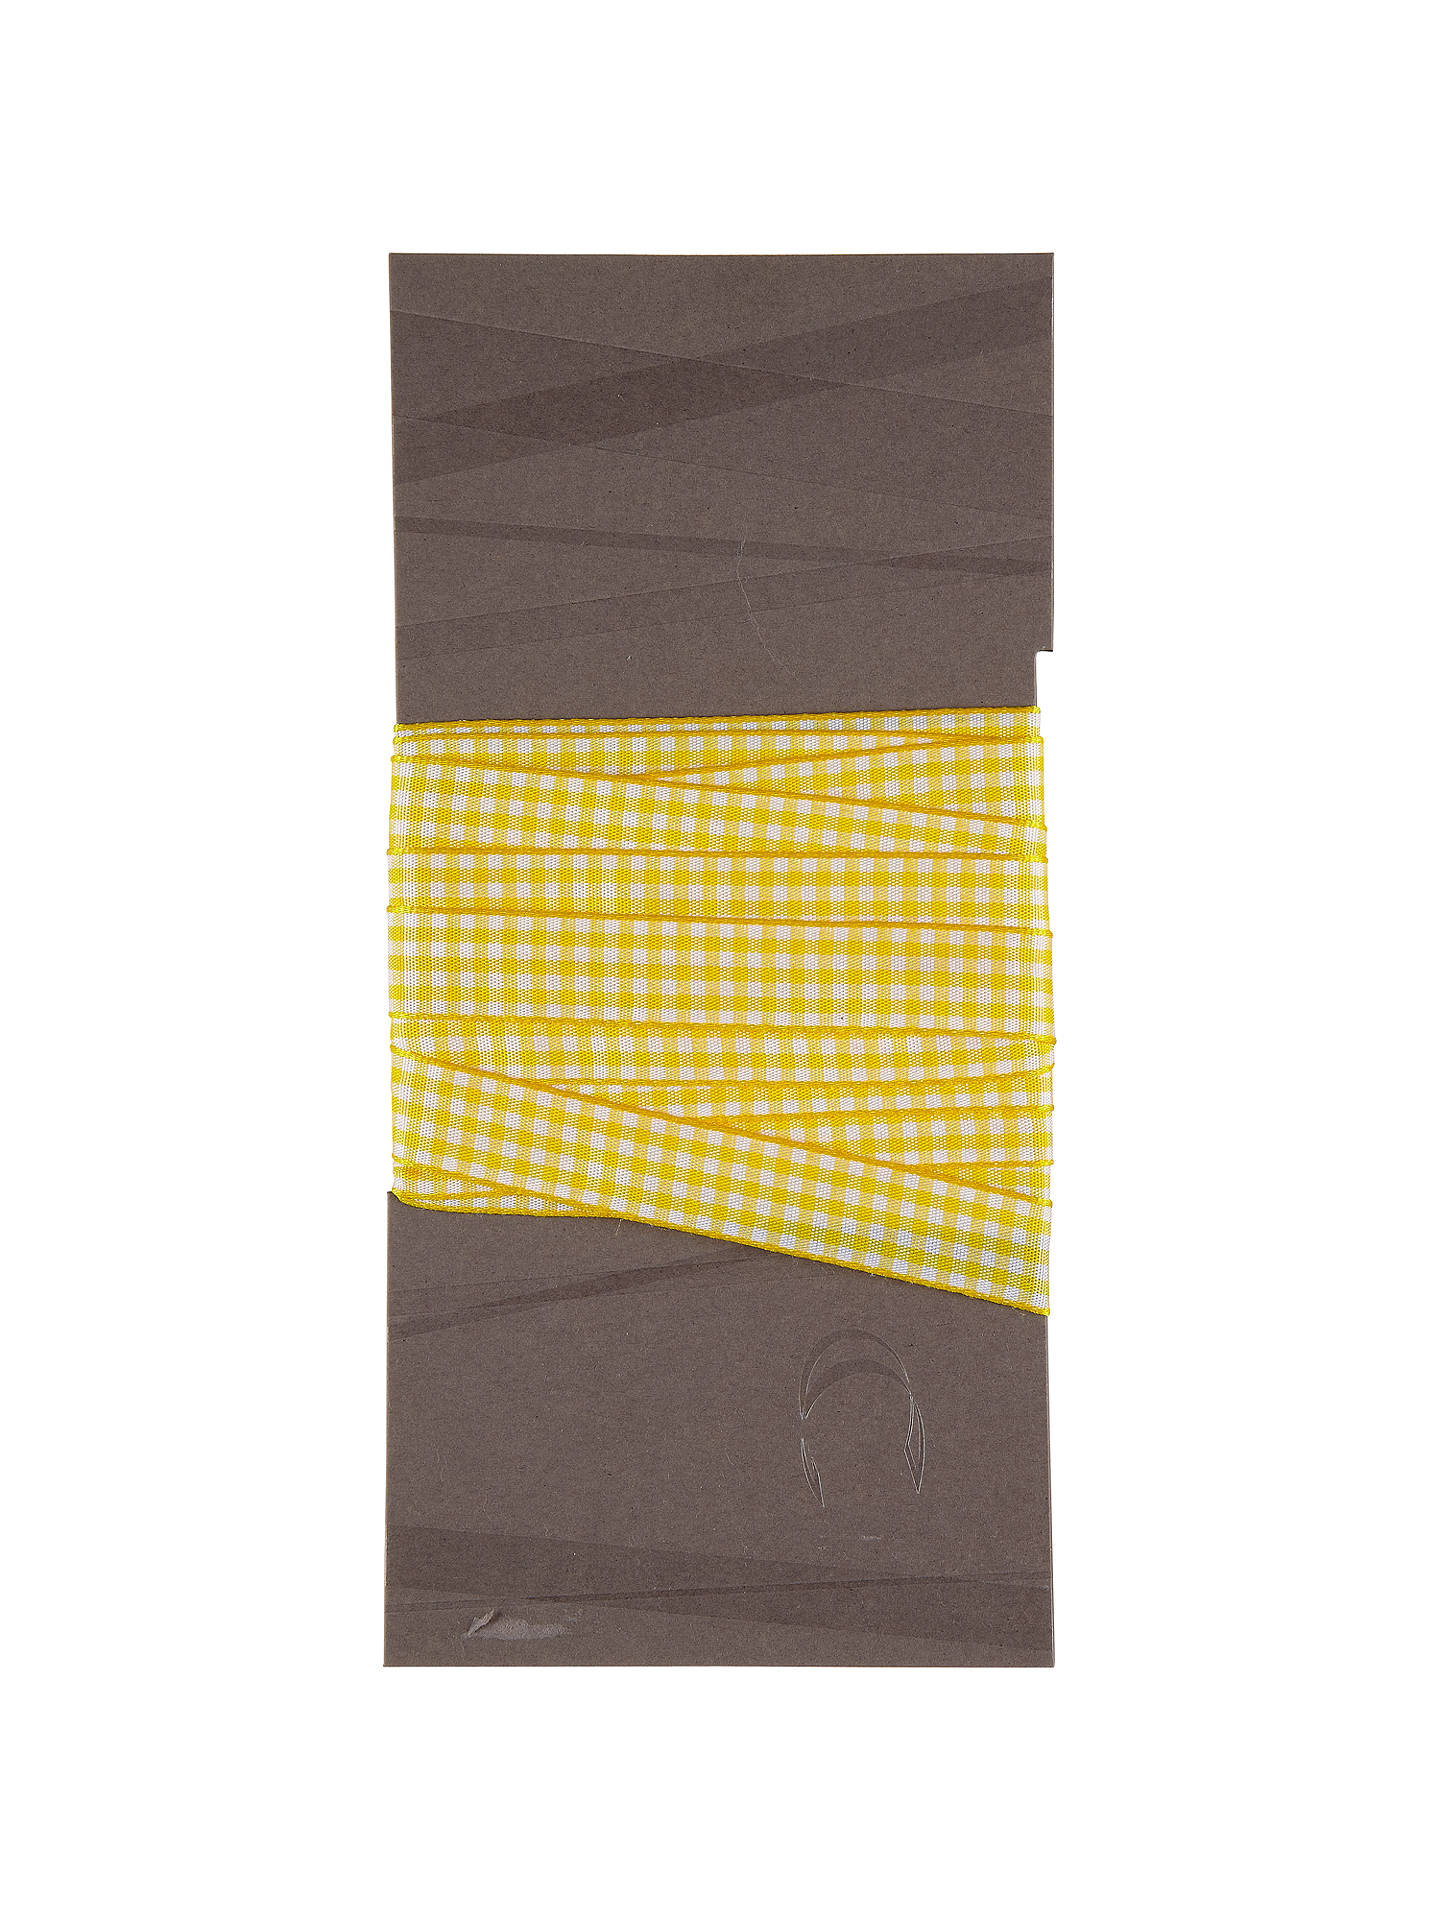 BuyJohn Lewis & Partners Gingham Ribbon, Yellow/White, 16mm Online at johnlewis.com